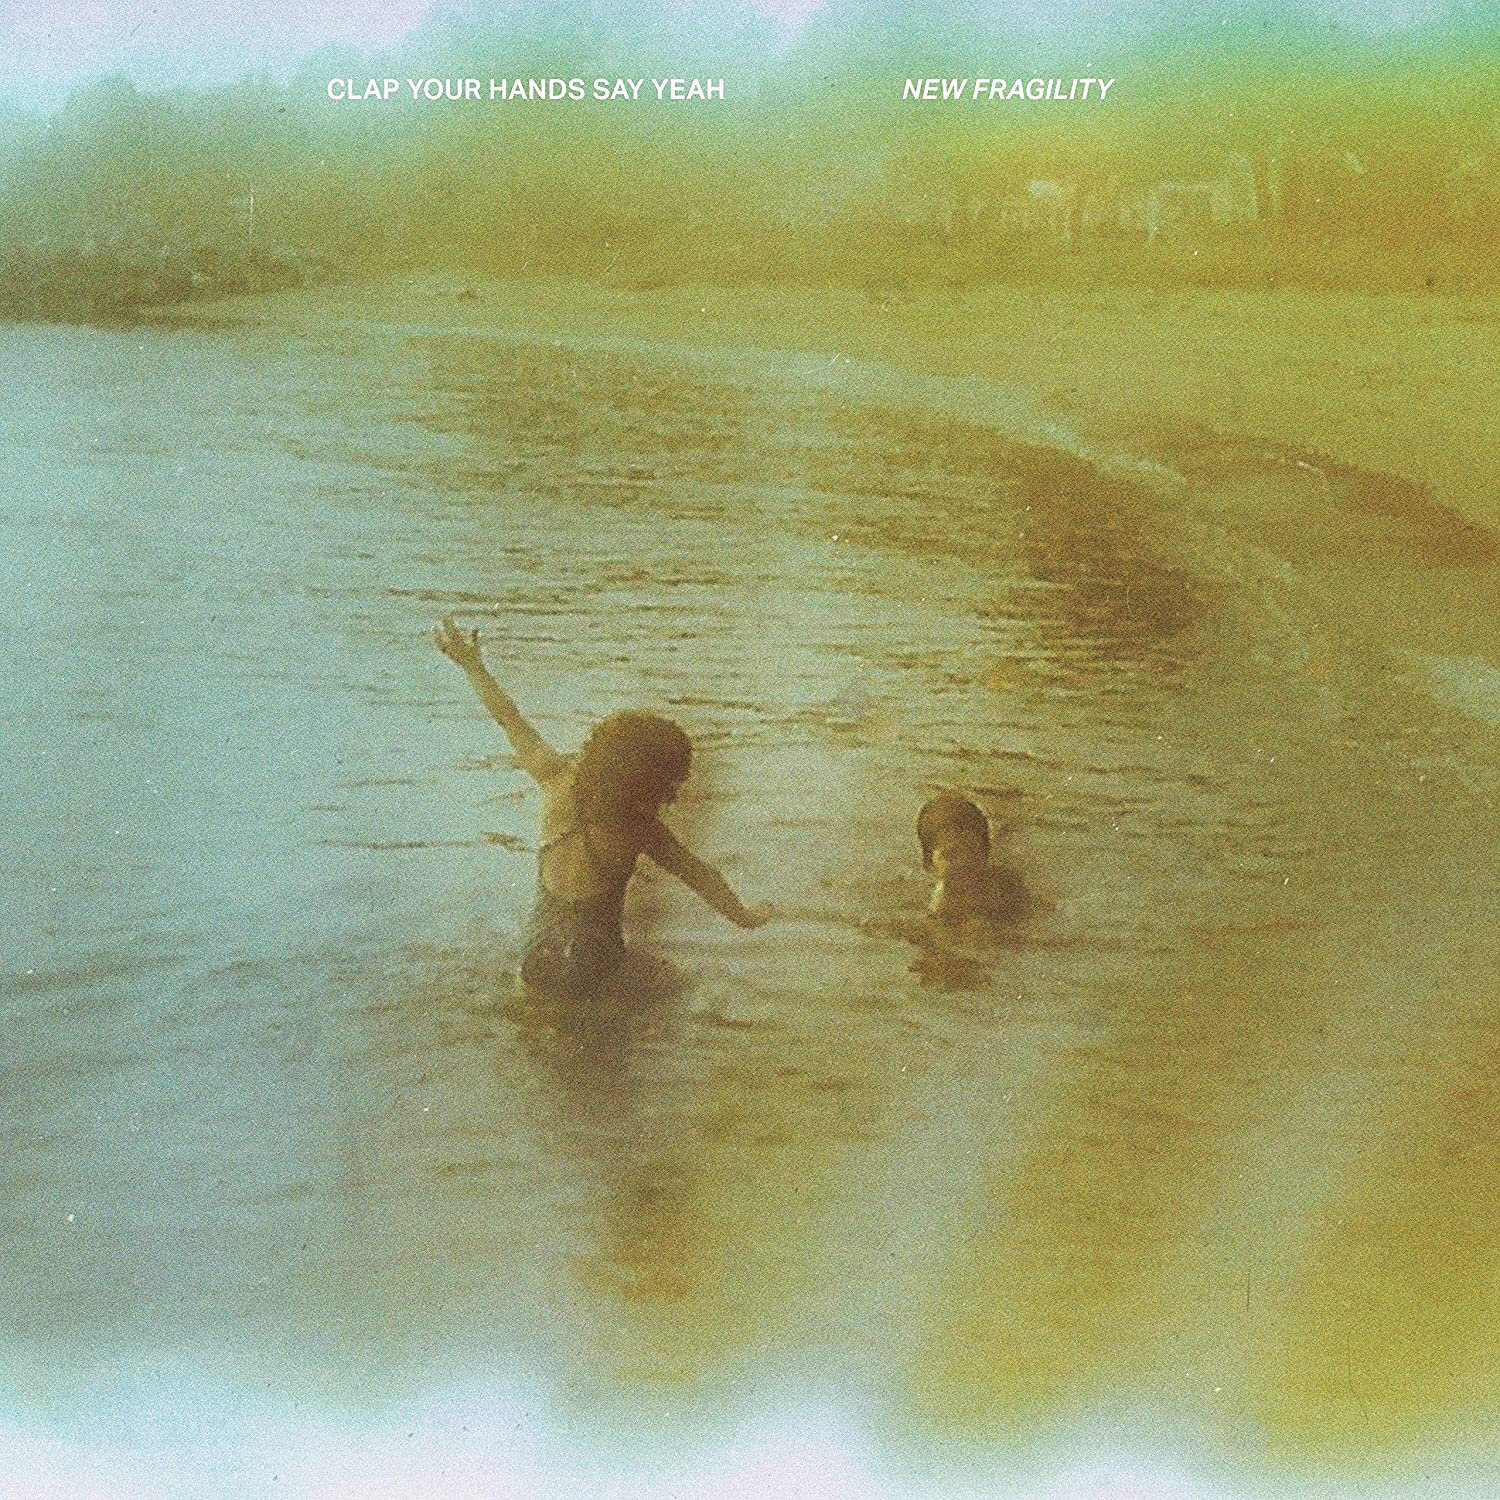 CLAP YOUR HANDS SAY YEAH – New Fragility (2021)